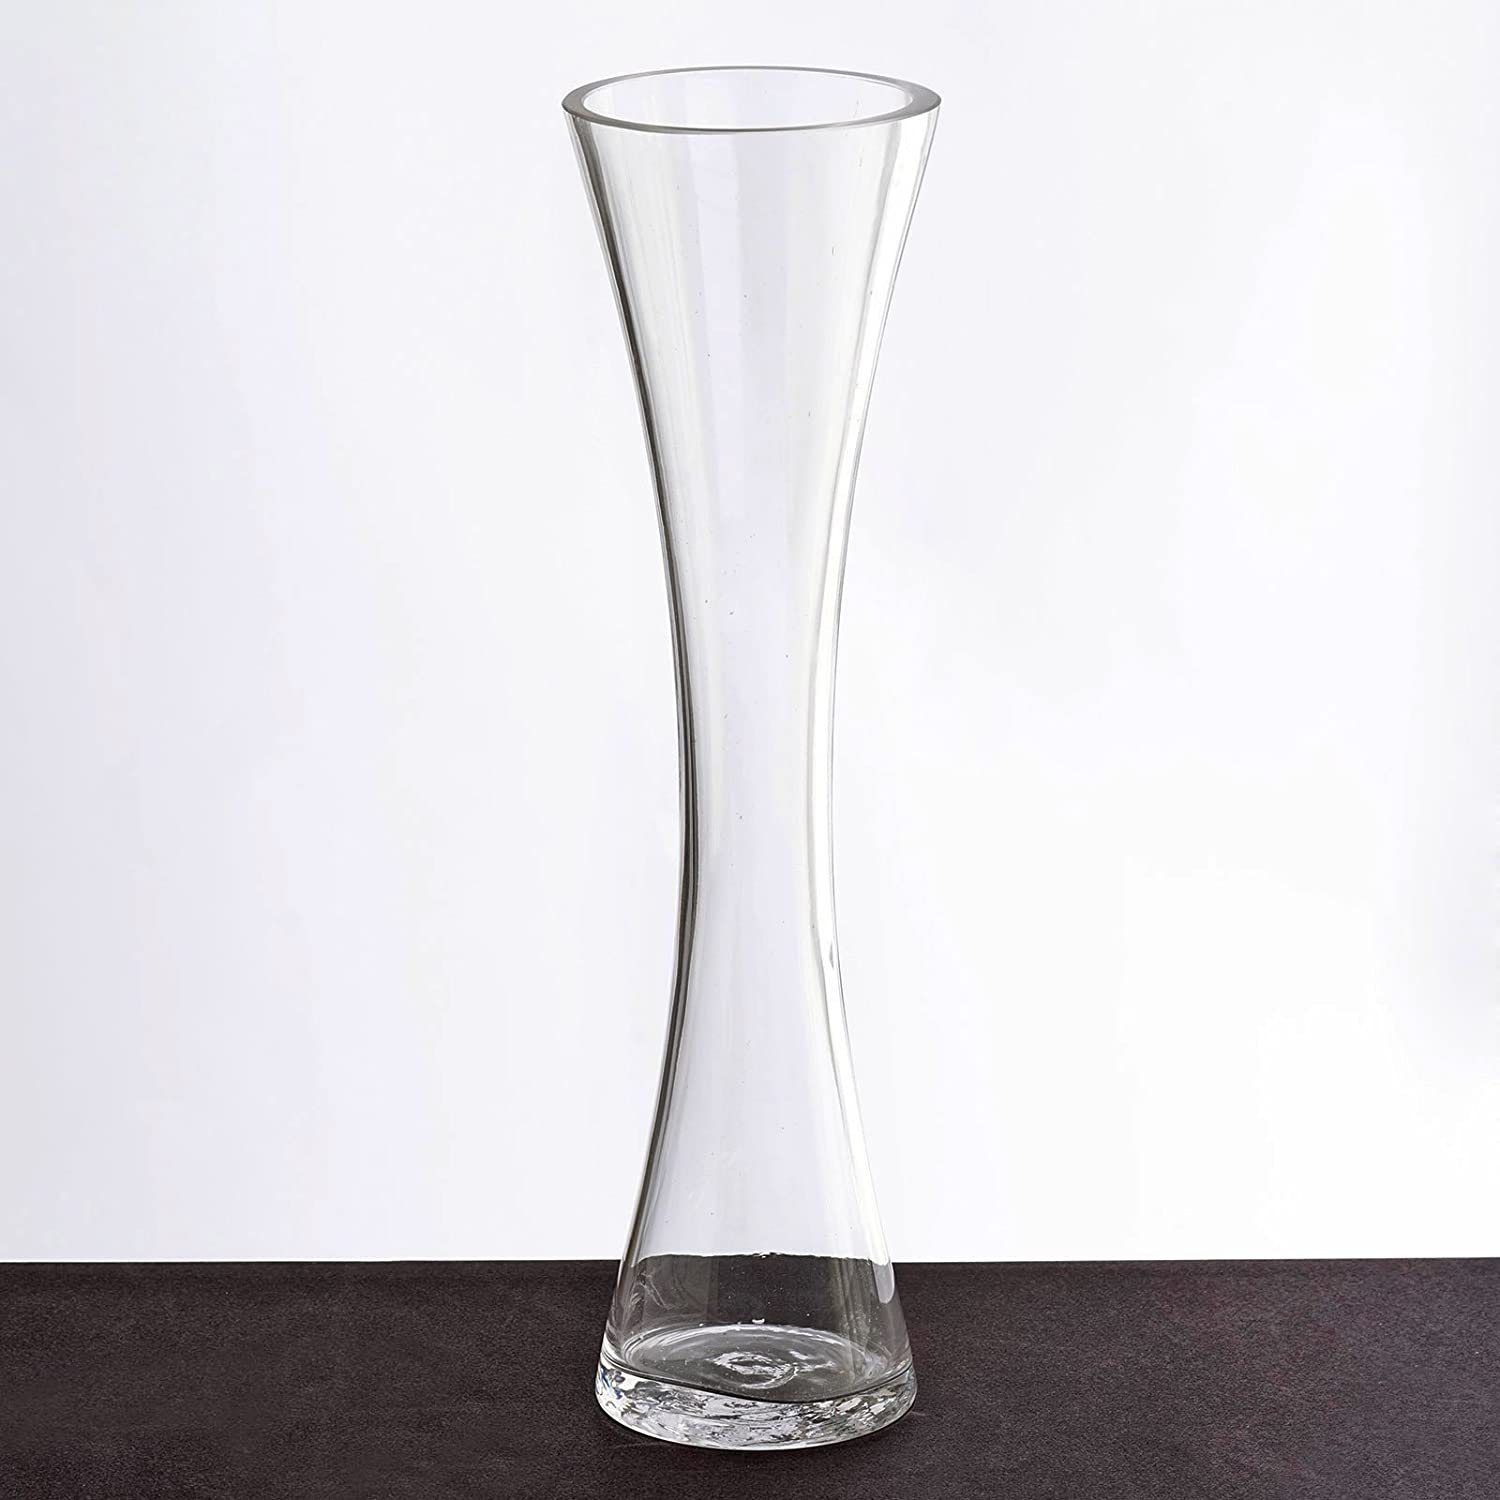 Amazon Com Balsacircle 12 Pcs 12 Tall Clear Glass Hourglass Vases For Wedding Party Flowers Centerpieces Home Decorations Cheap Bulk Supplies Home Kitchen